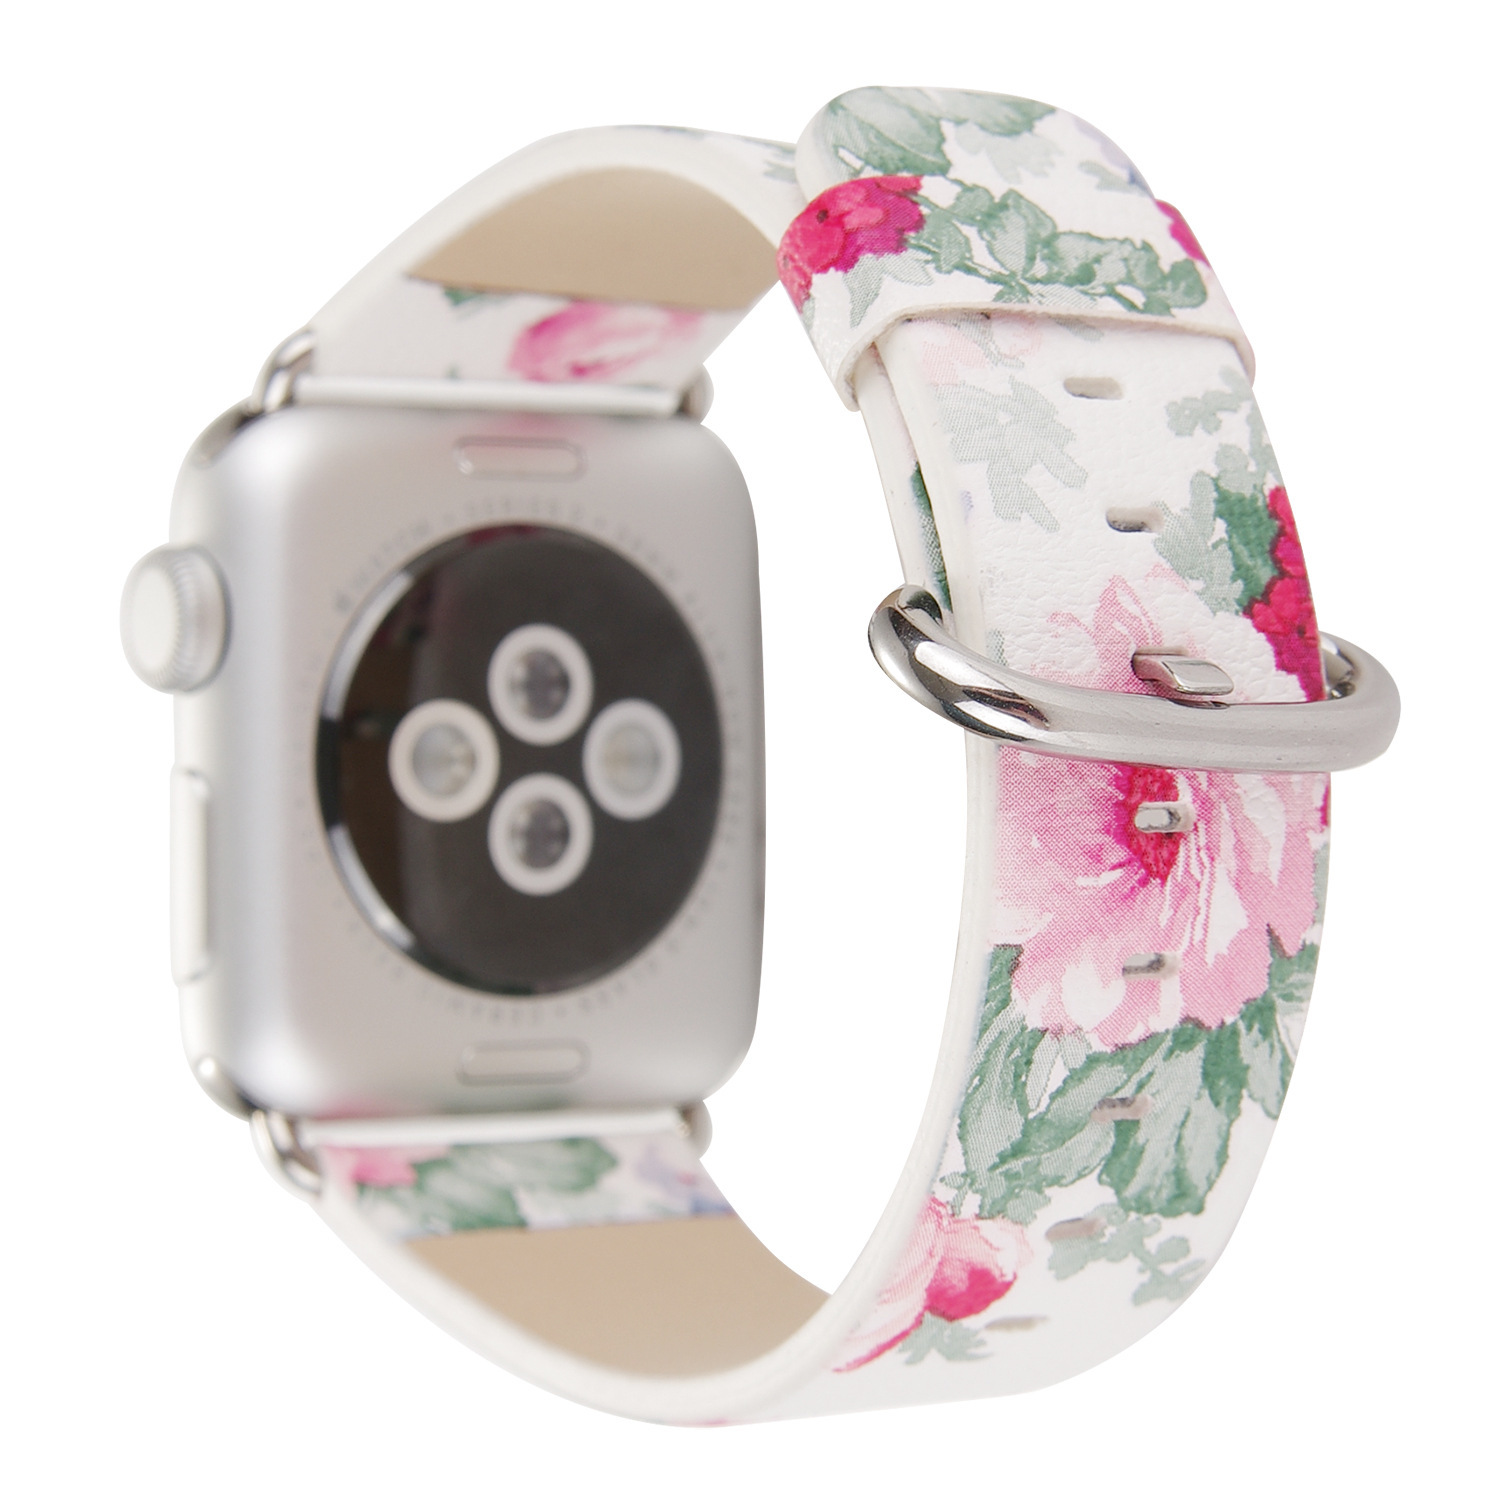 For Apple 4 Watch Flower In Ink Leather Watch Strap New Style APPLE Watch Strap IWatch Watch Strap